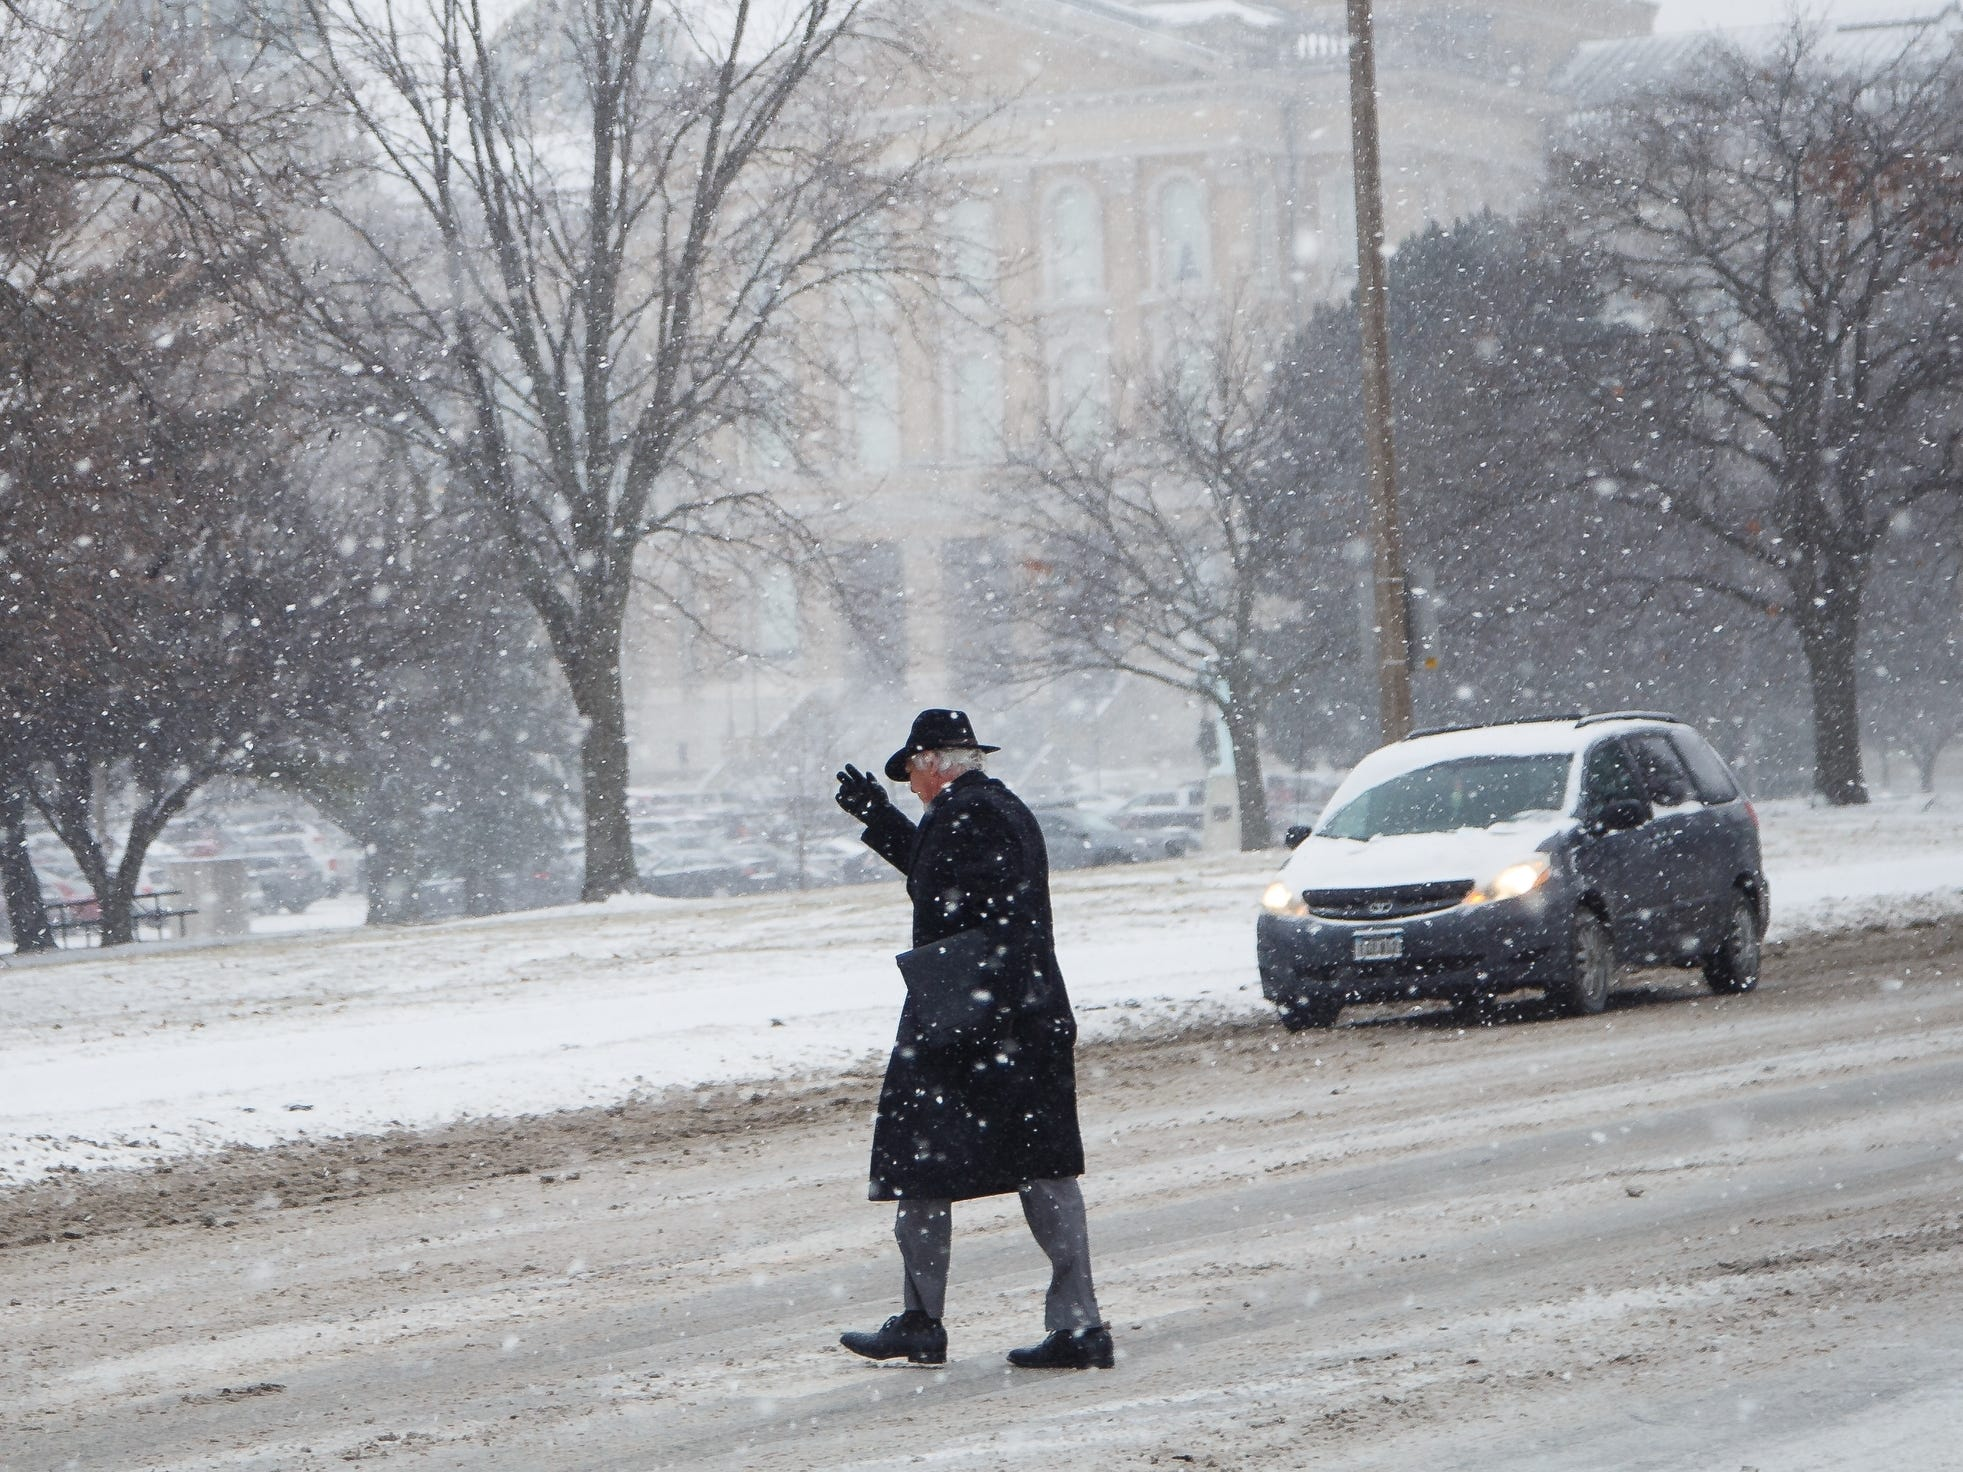 A man crosses the street in front of the state capitol as another round of snow falls in Des Moines on Thursday, Feb. 7, 2019, in Des Moines.